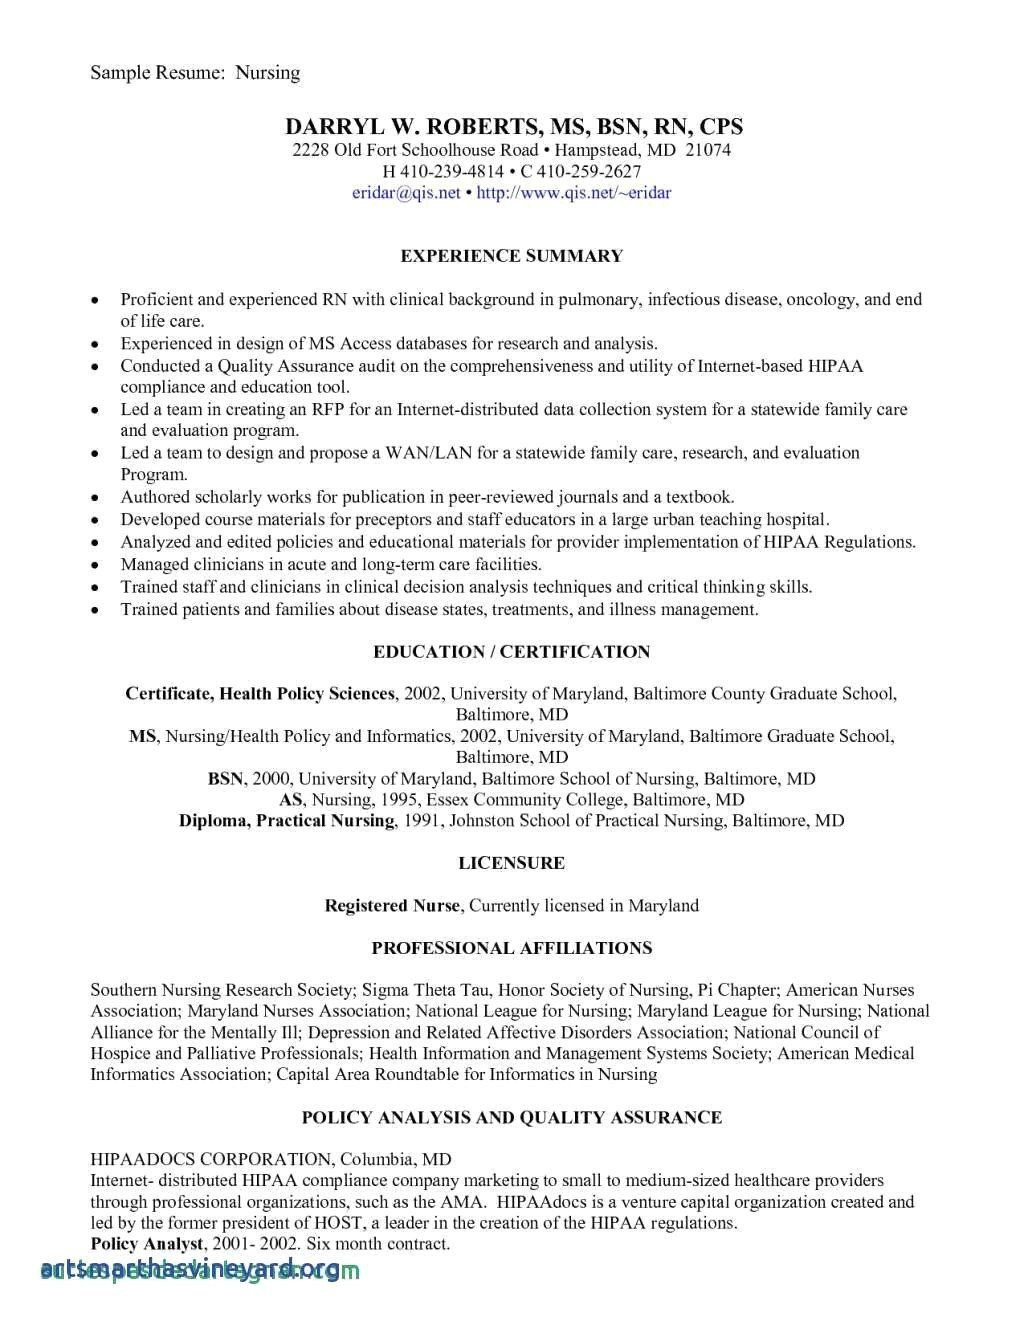 New Grad Registered Nurse Resume Sample Unique Sample